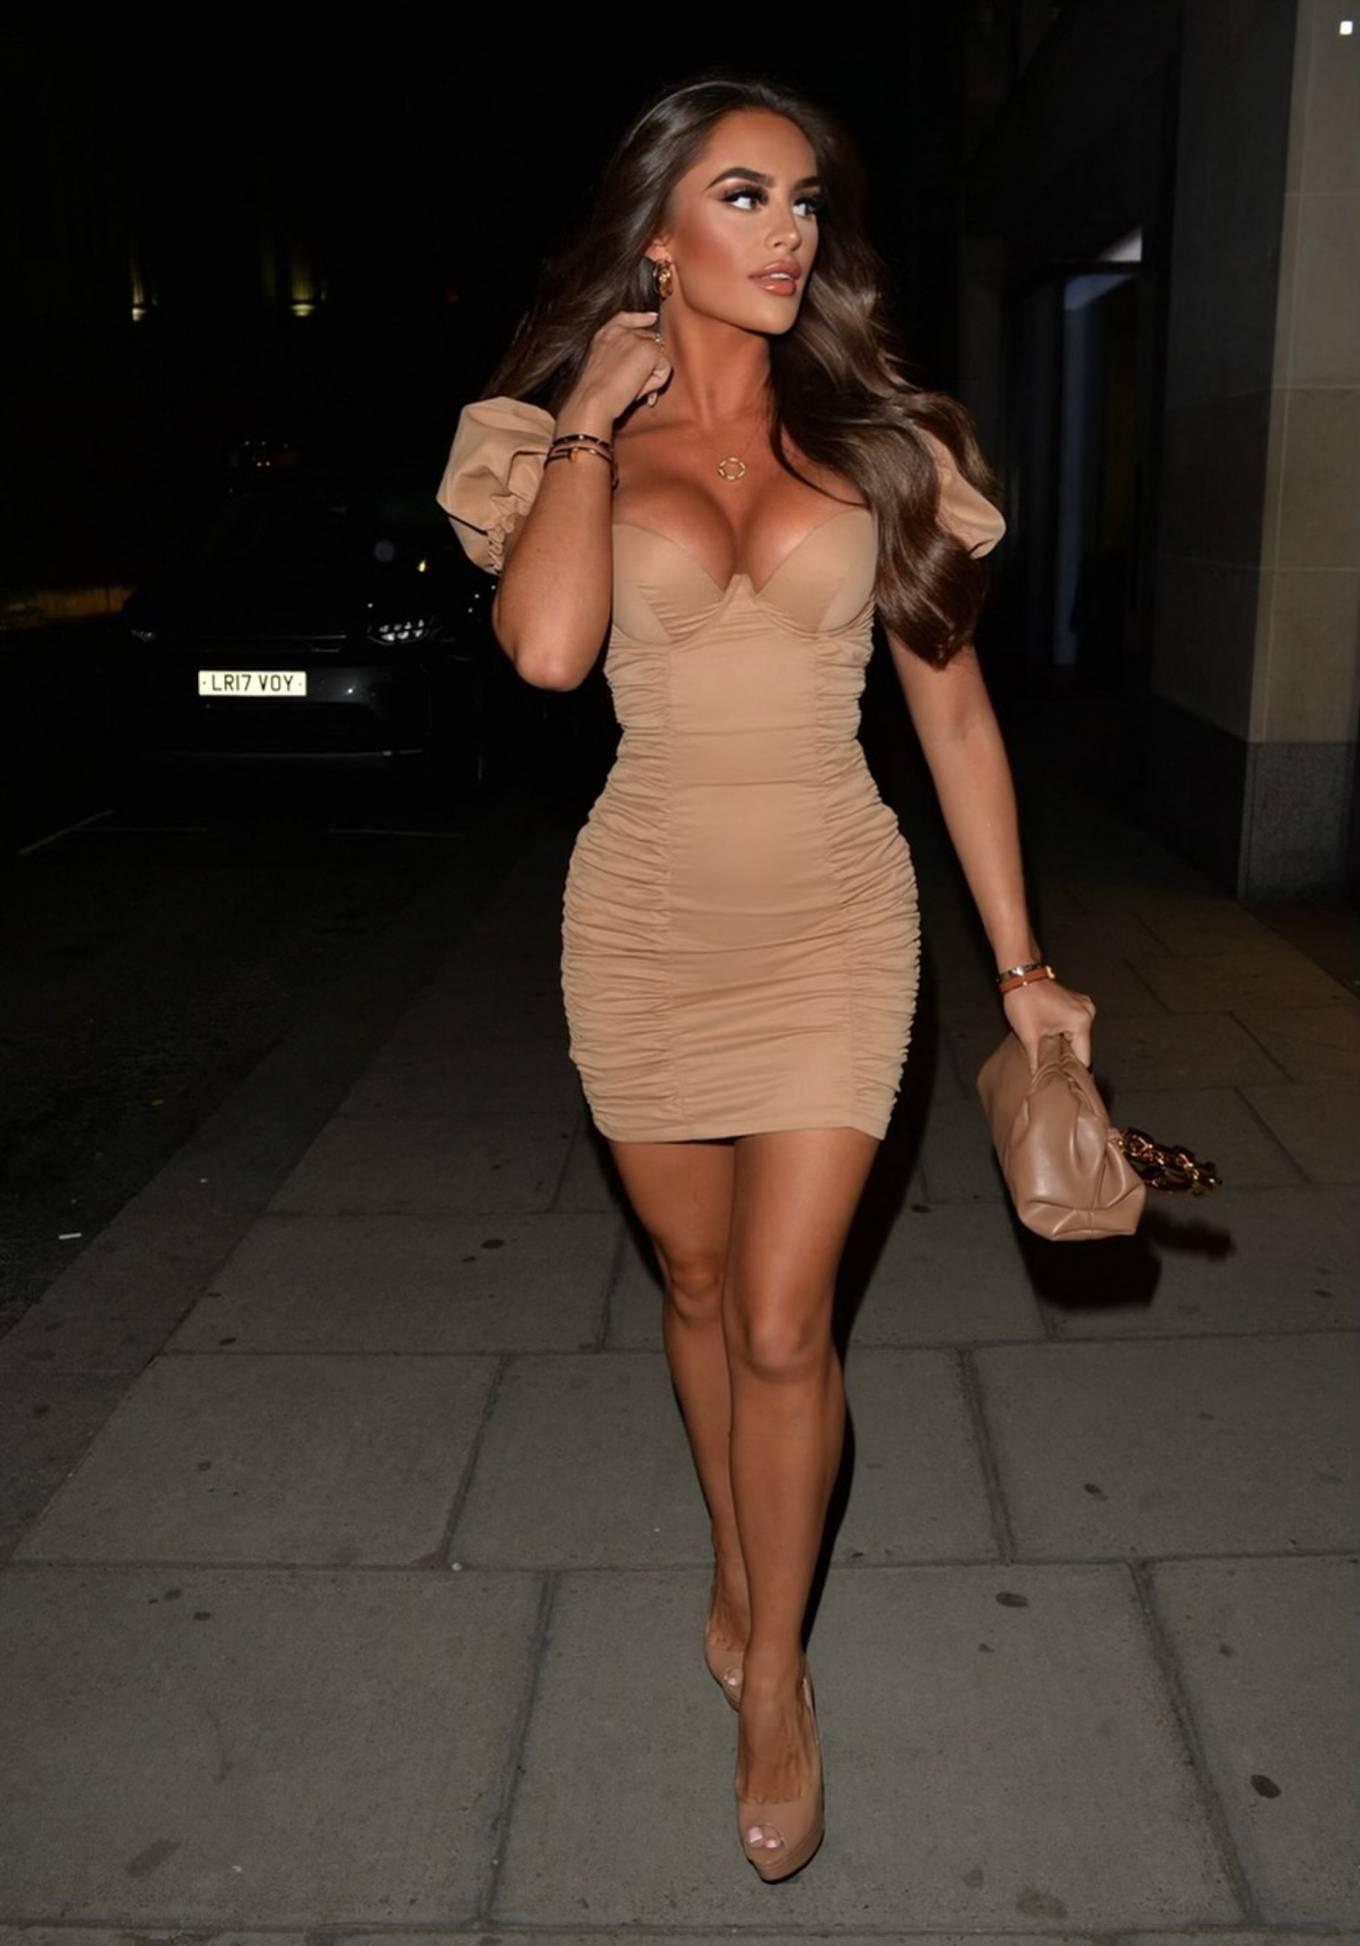 Mia Sully - Seen heading for a girls night out at MNKY house in London